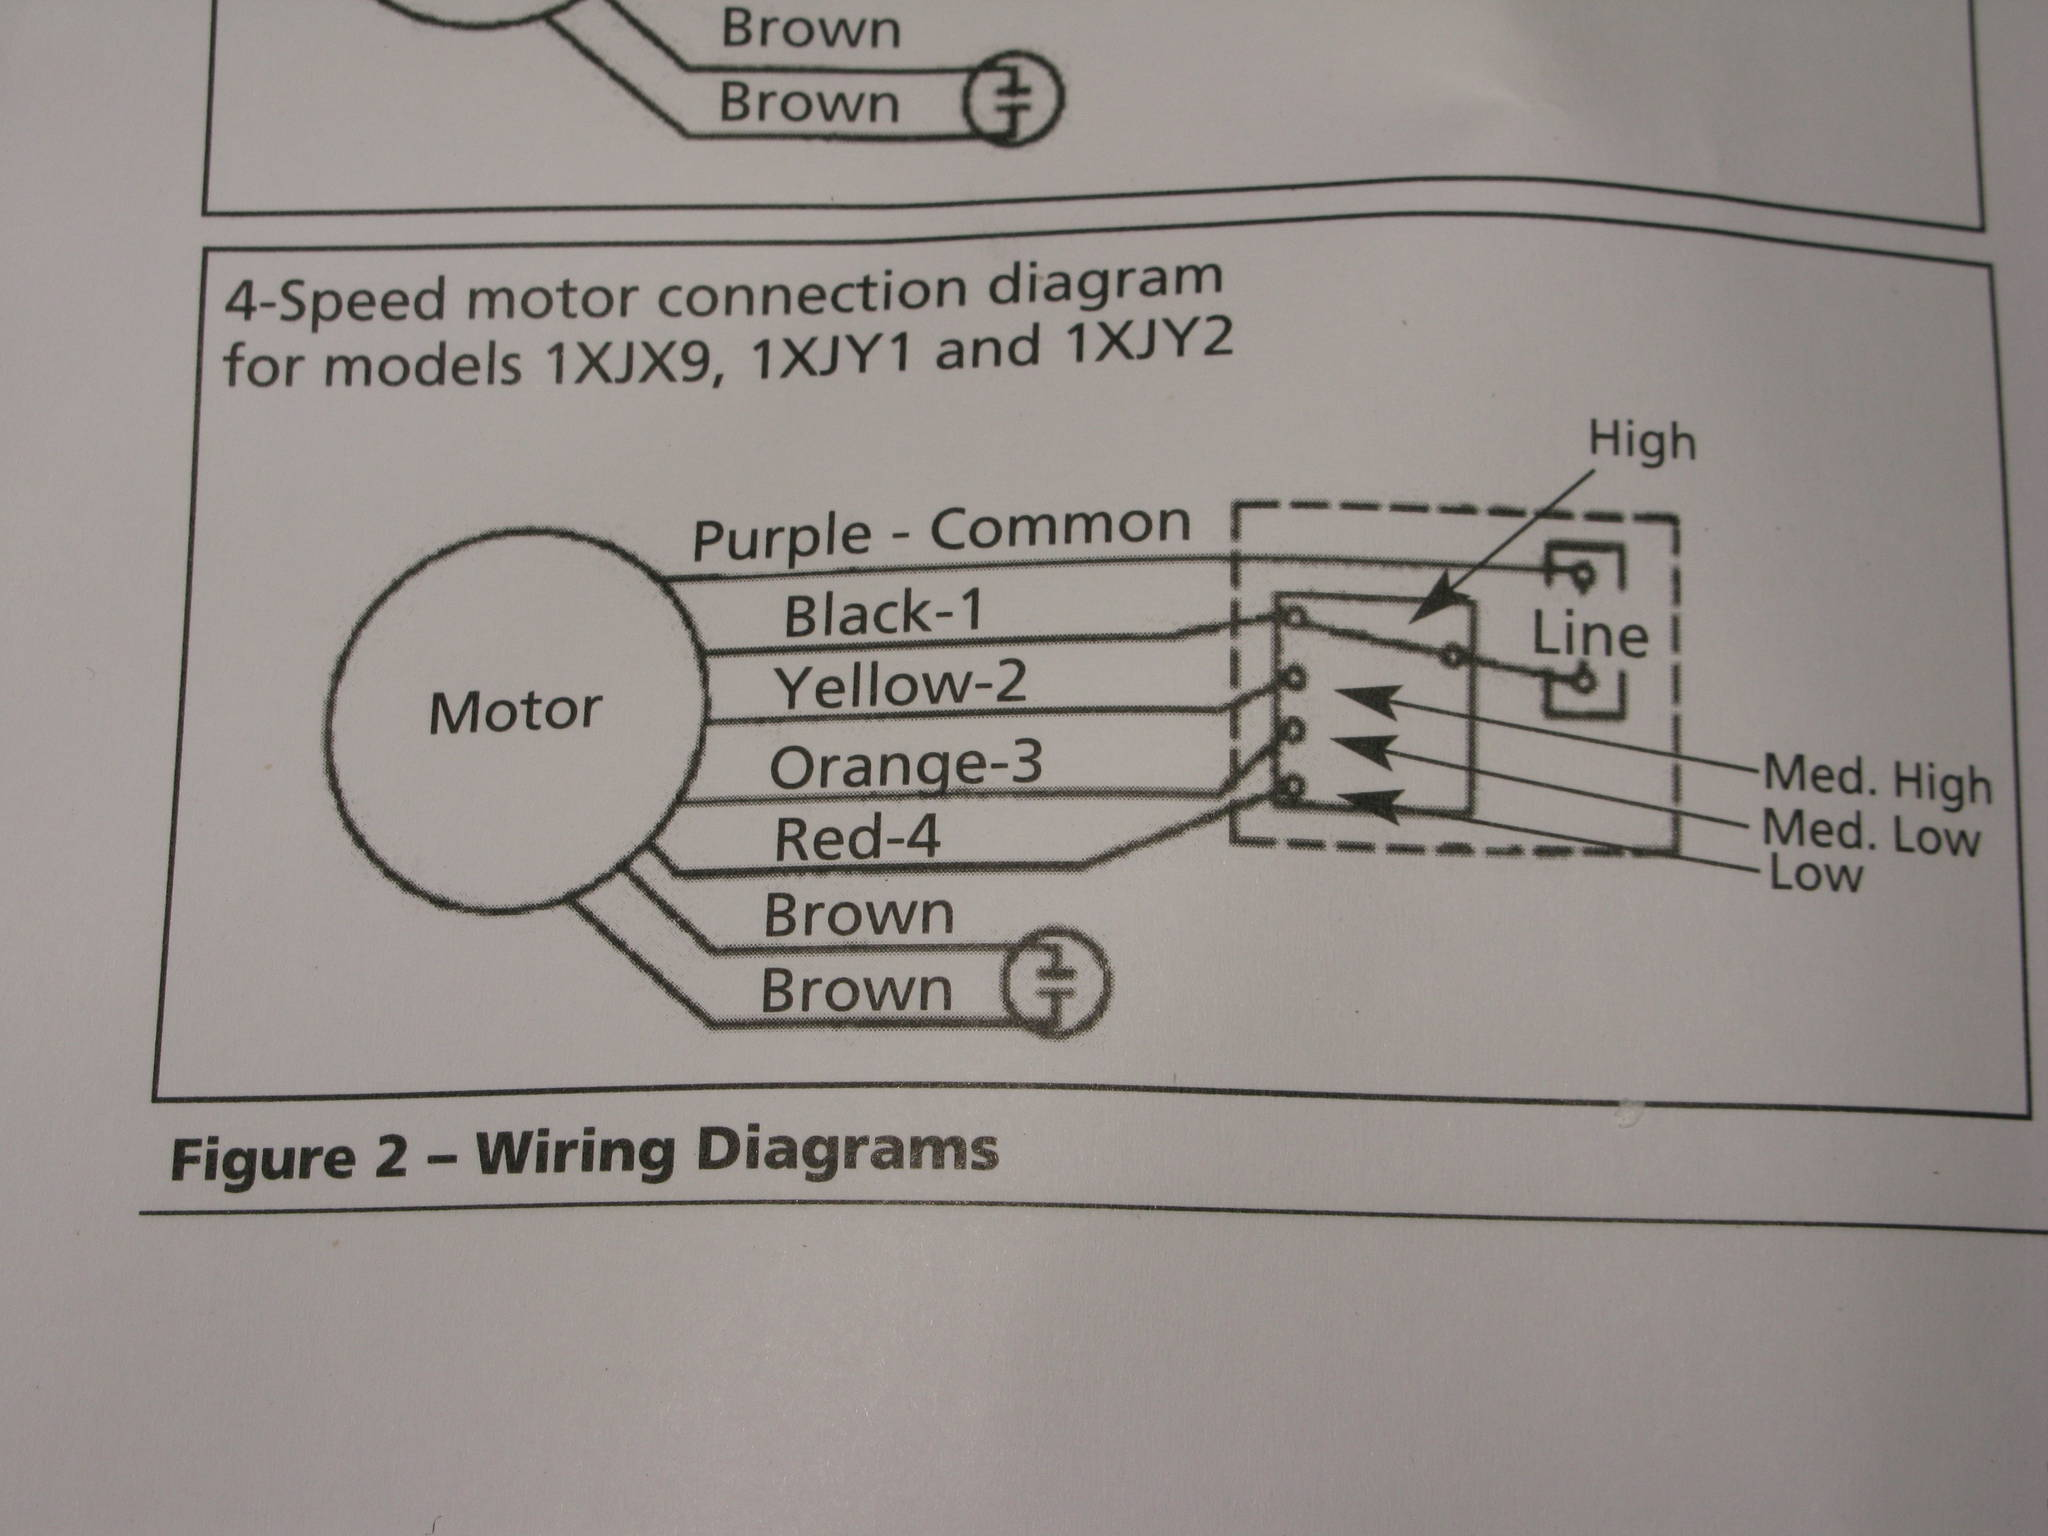 2 hp single phase motor wiring diagram 1970 chevelle ignition dayton 220 vs 110 autos post